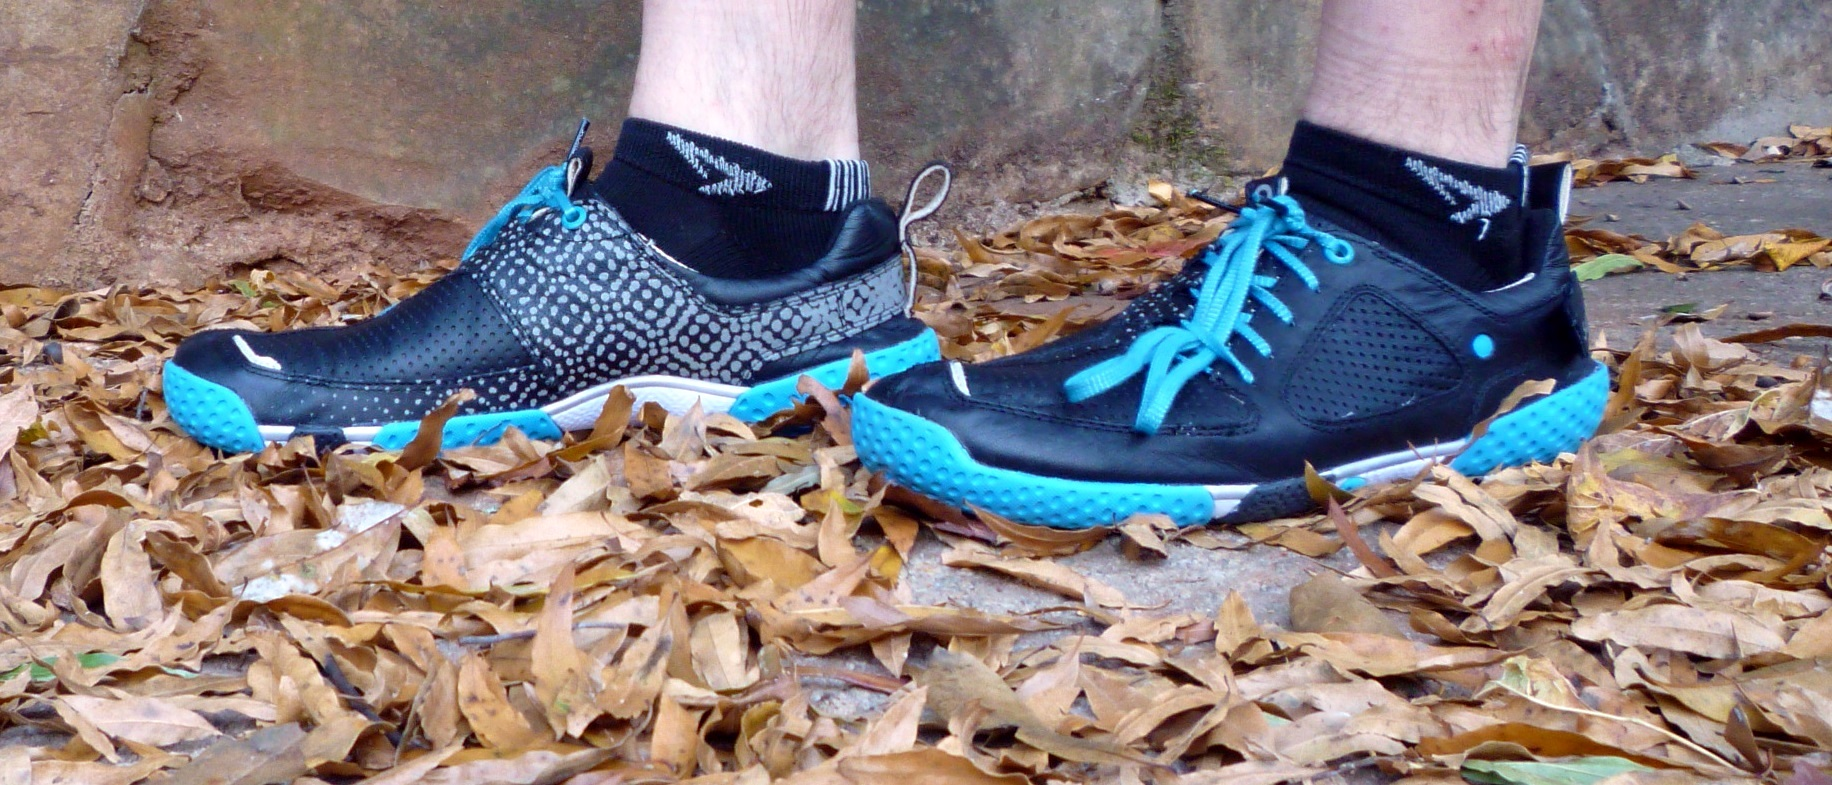 Review: SKORA Form Running Shoes – The Run Commuter